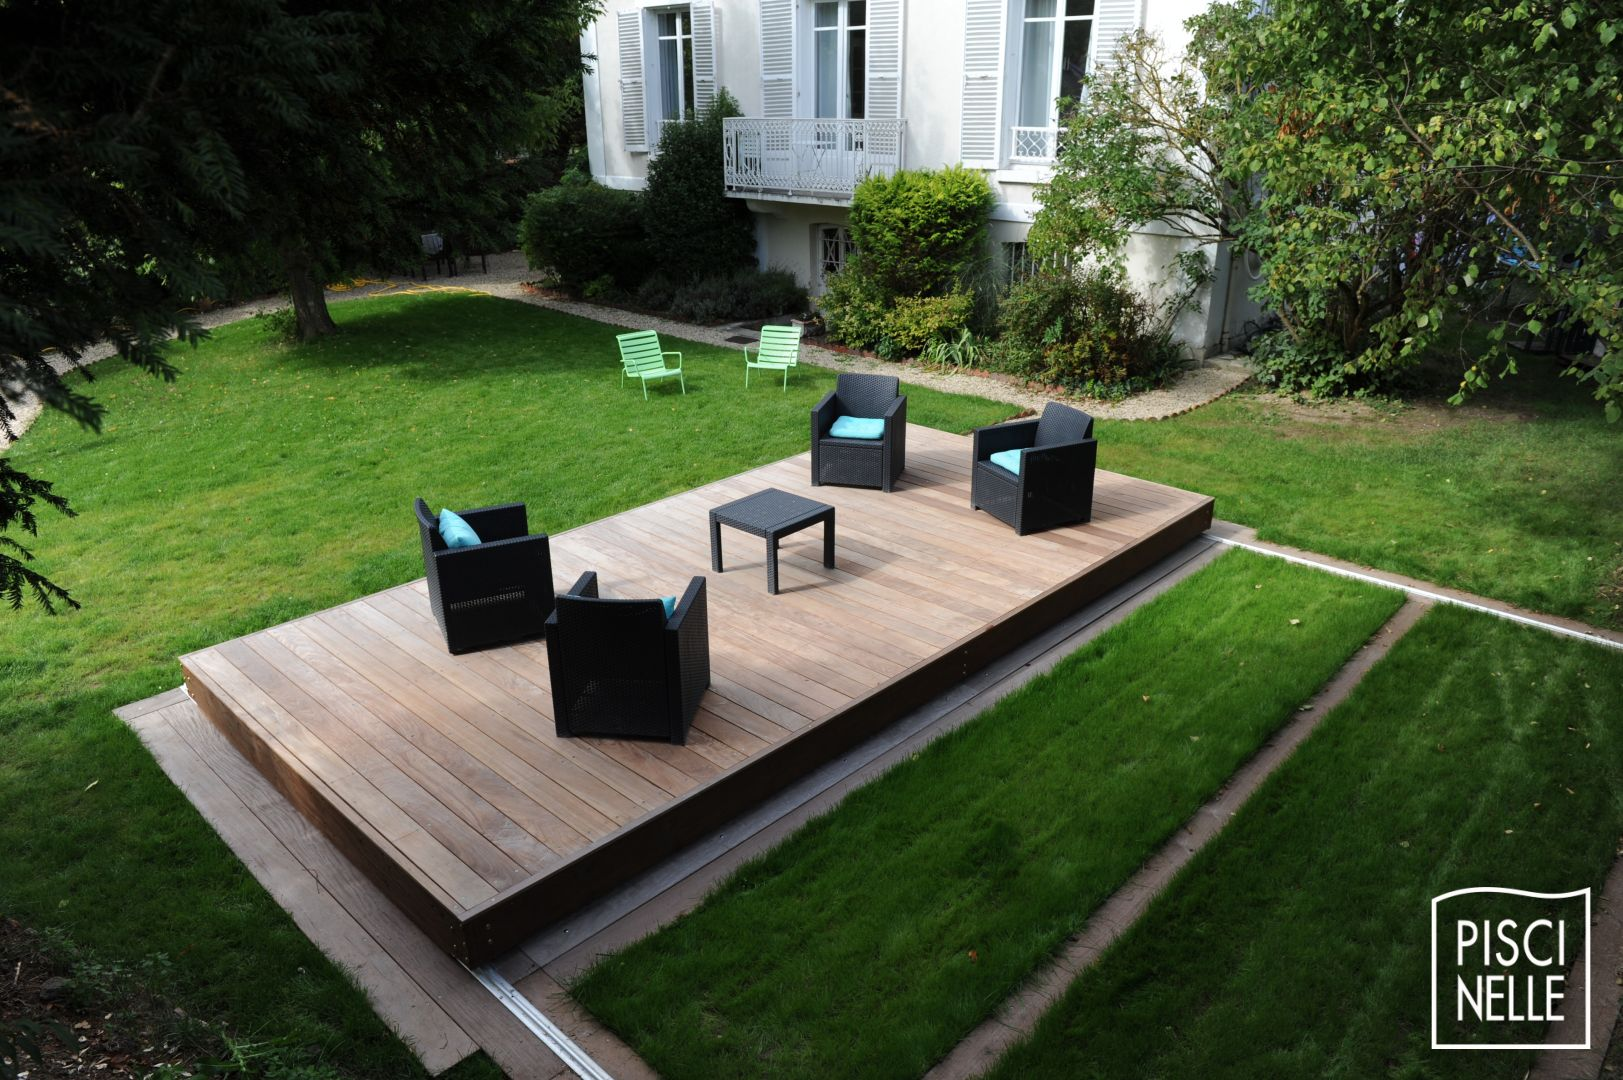 une terrasse coulissante de piscine rolling deck pisicnelle. Black Bedroom Furniture Sets. Home Design Ideas